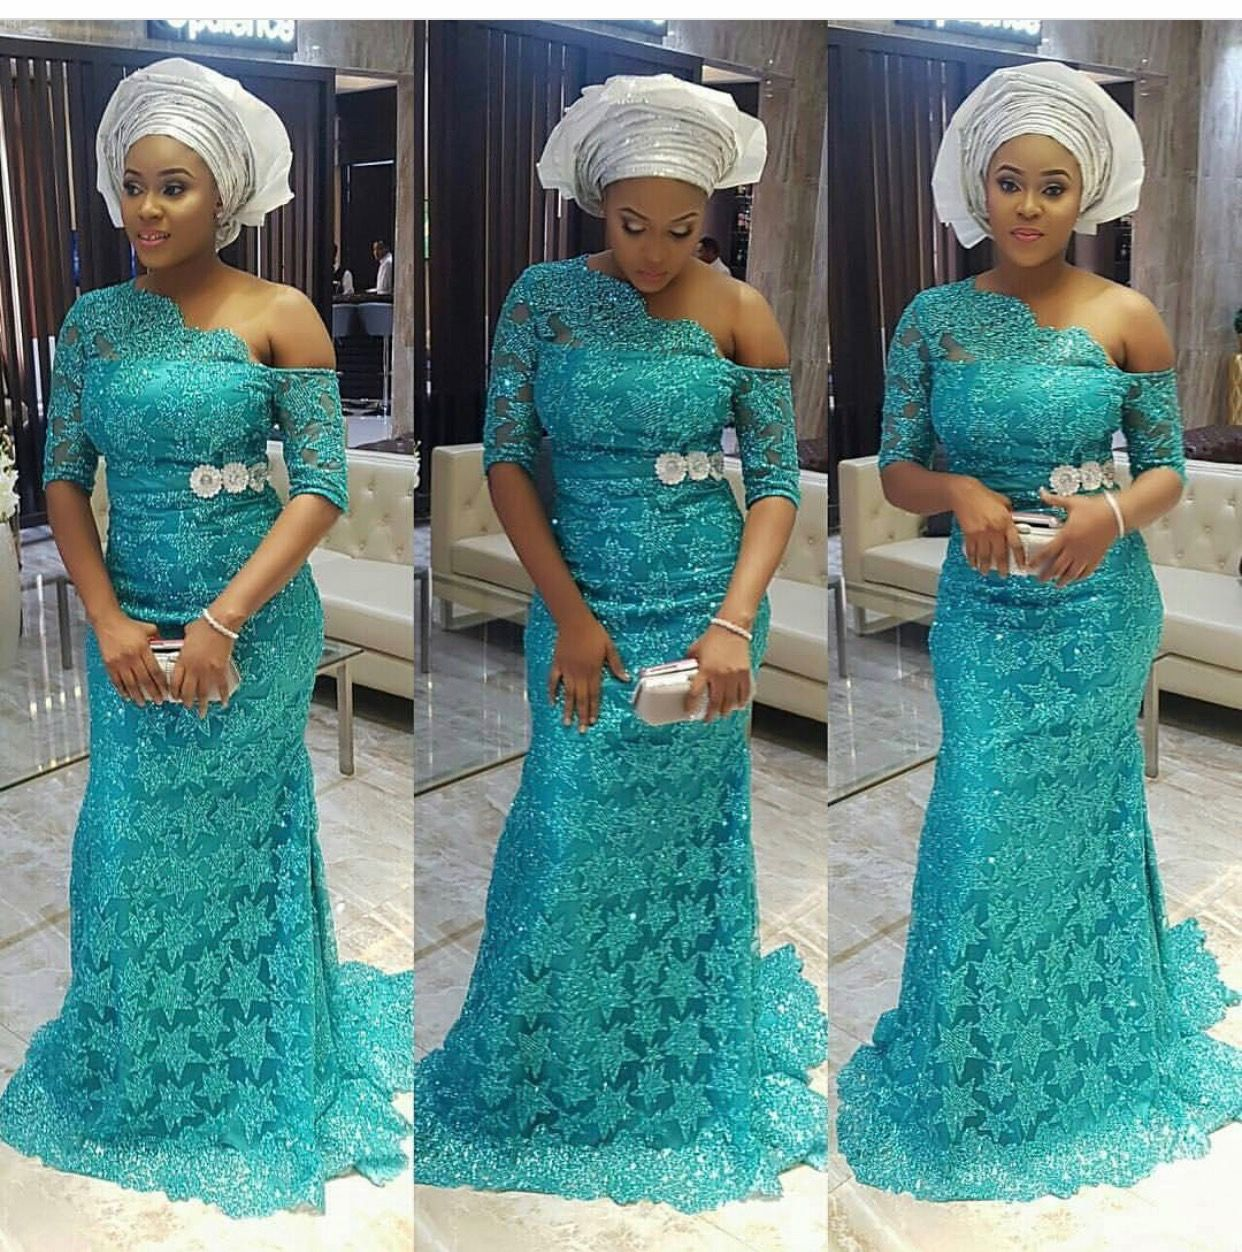 Pin by Vivace Princess on ASO-EBI | Pinterest | Africans, African ...